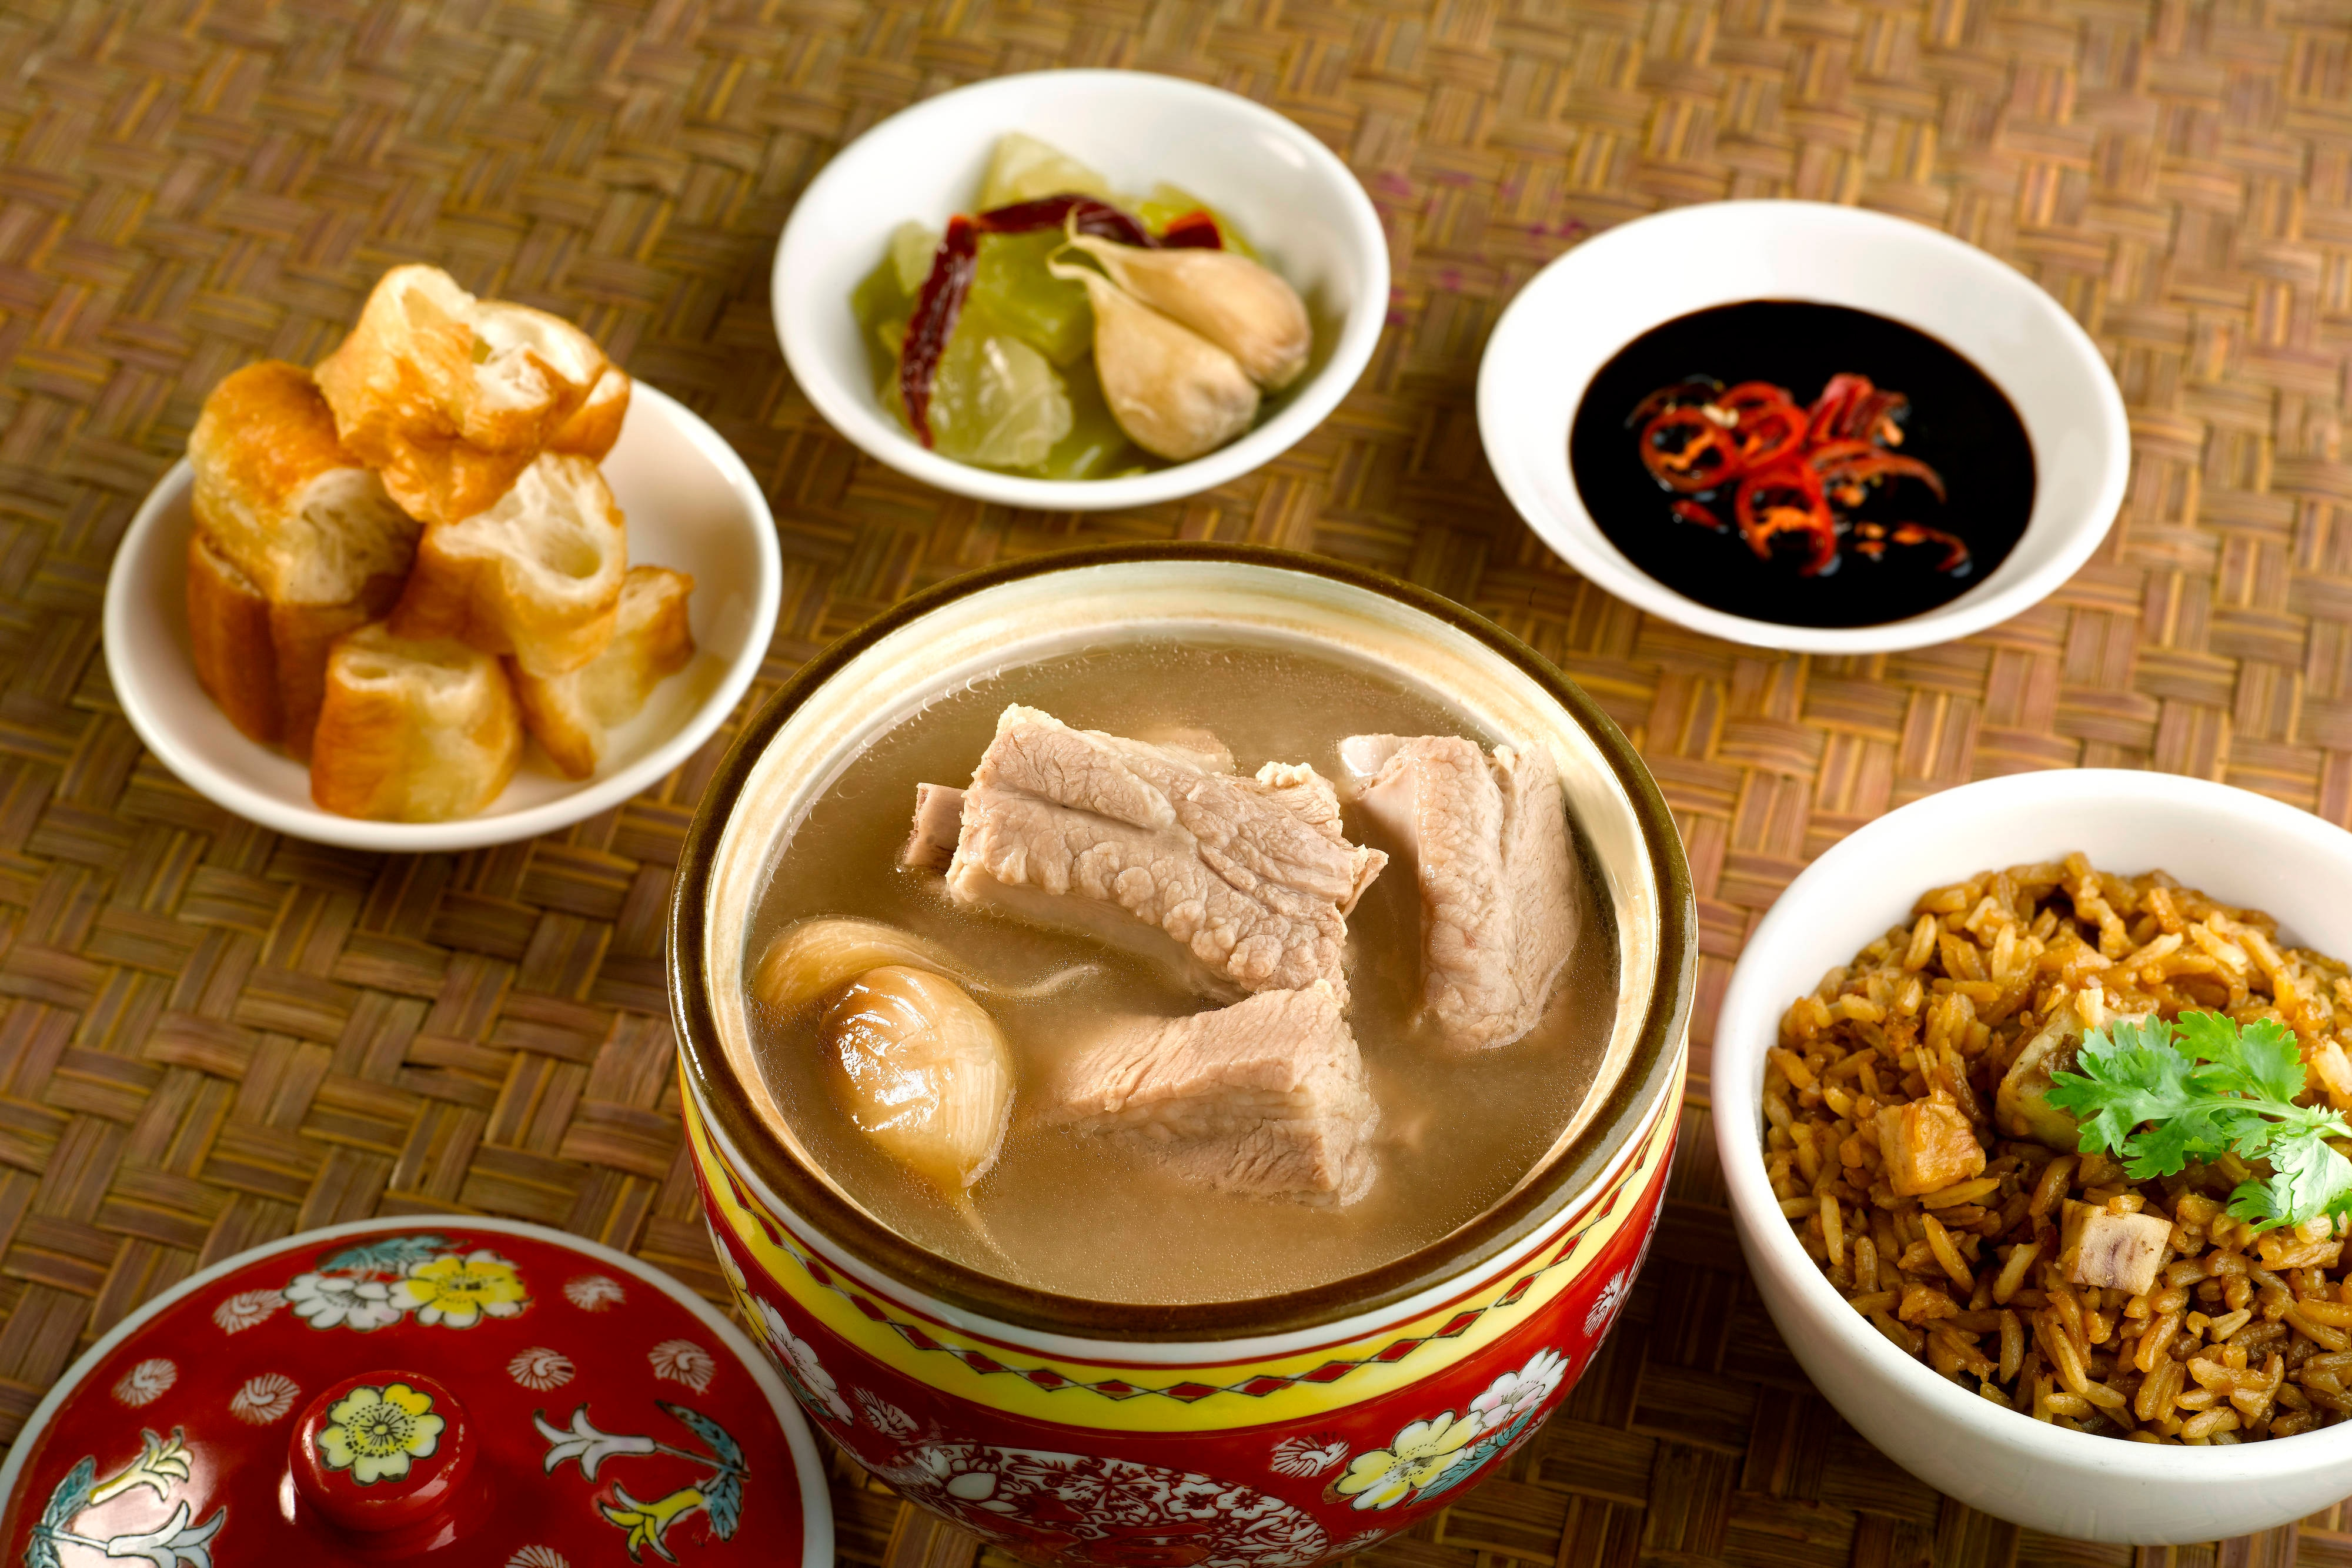 Four Points Eatery - Old Time Bak Kut Teh